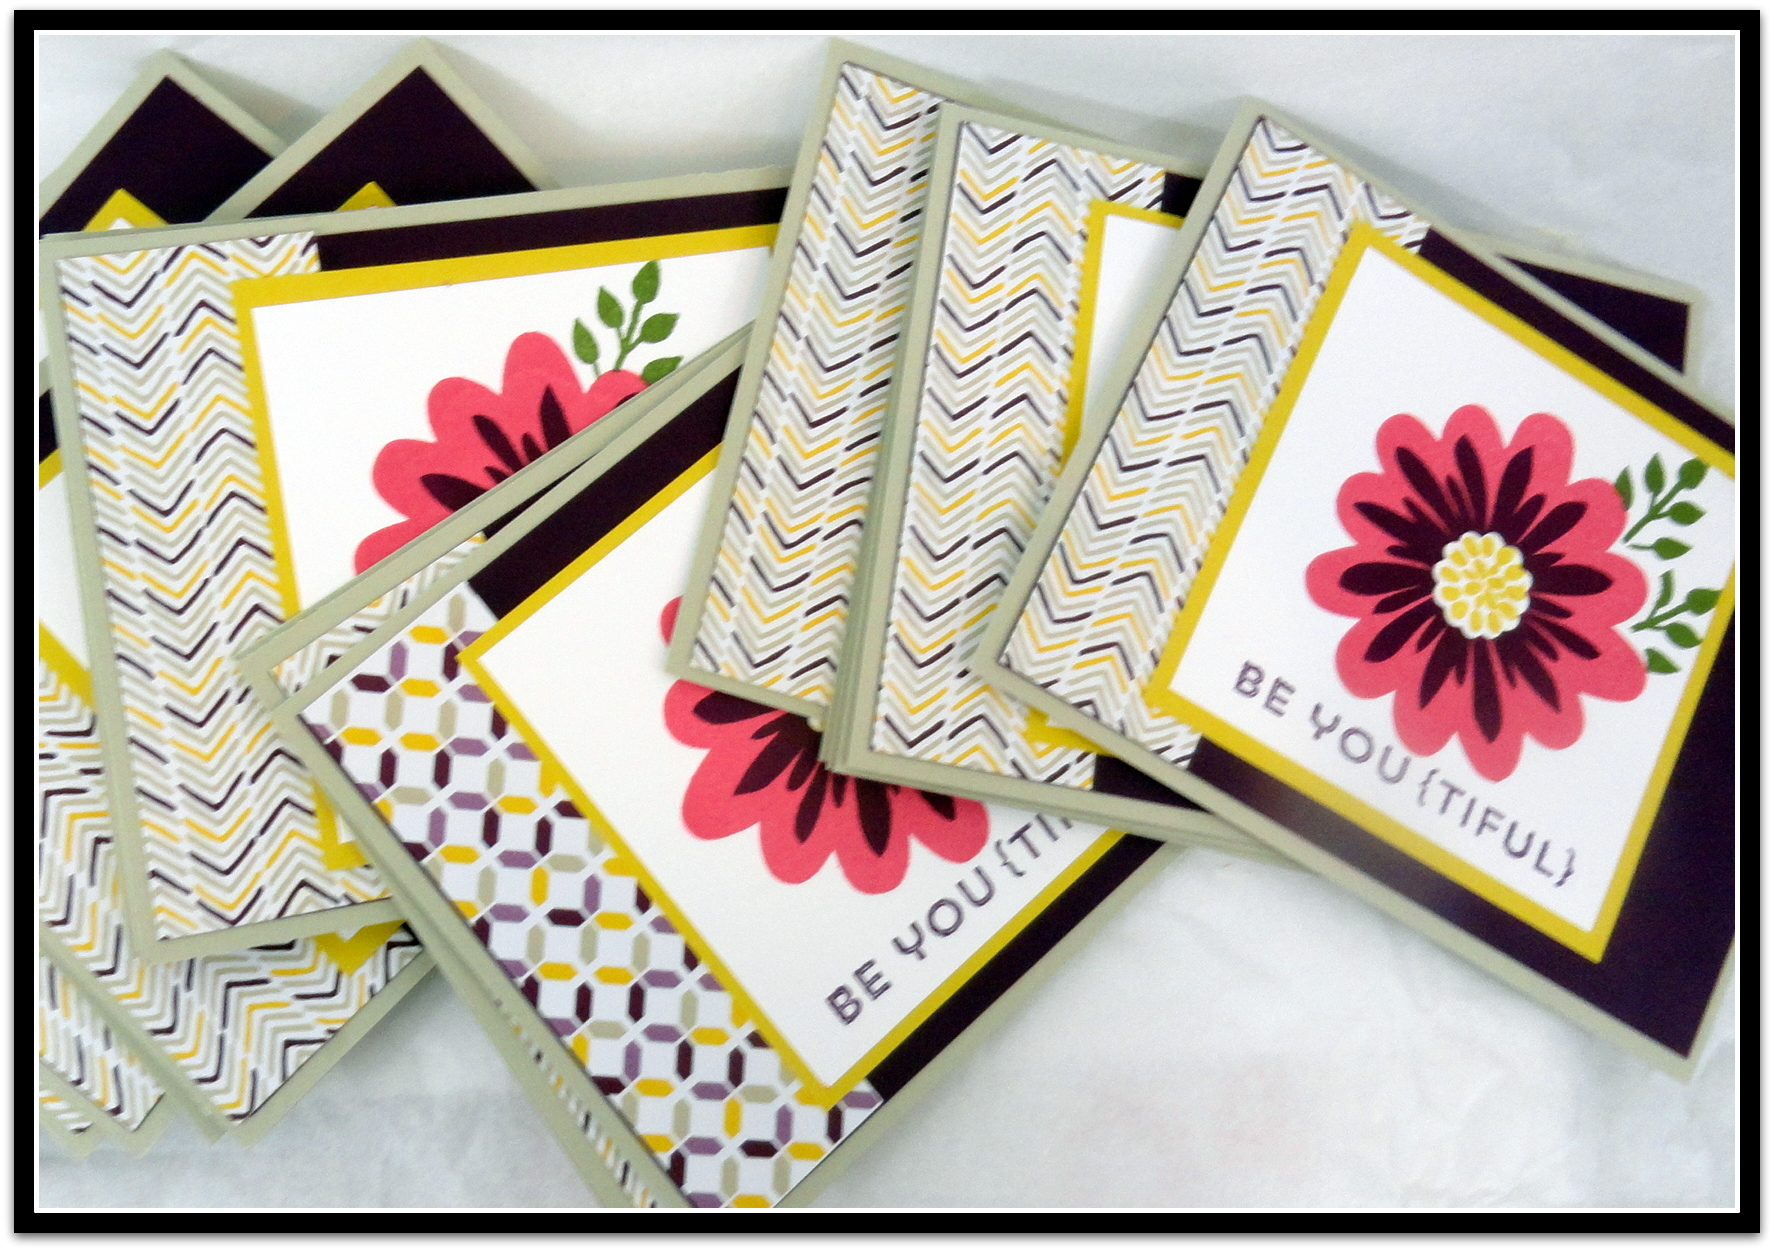 Blooming Flower Patch Handmade Occasion Card